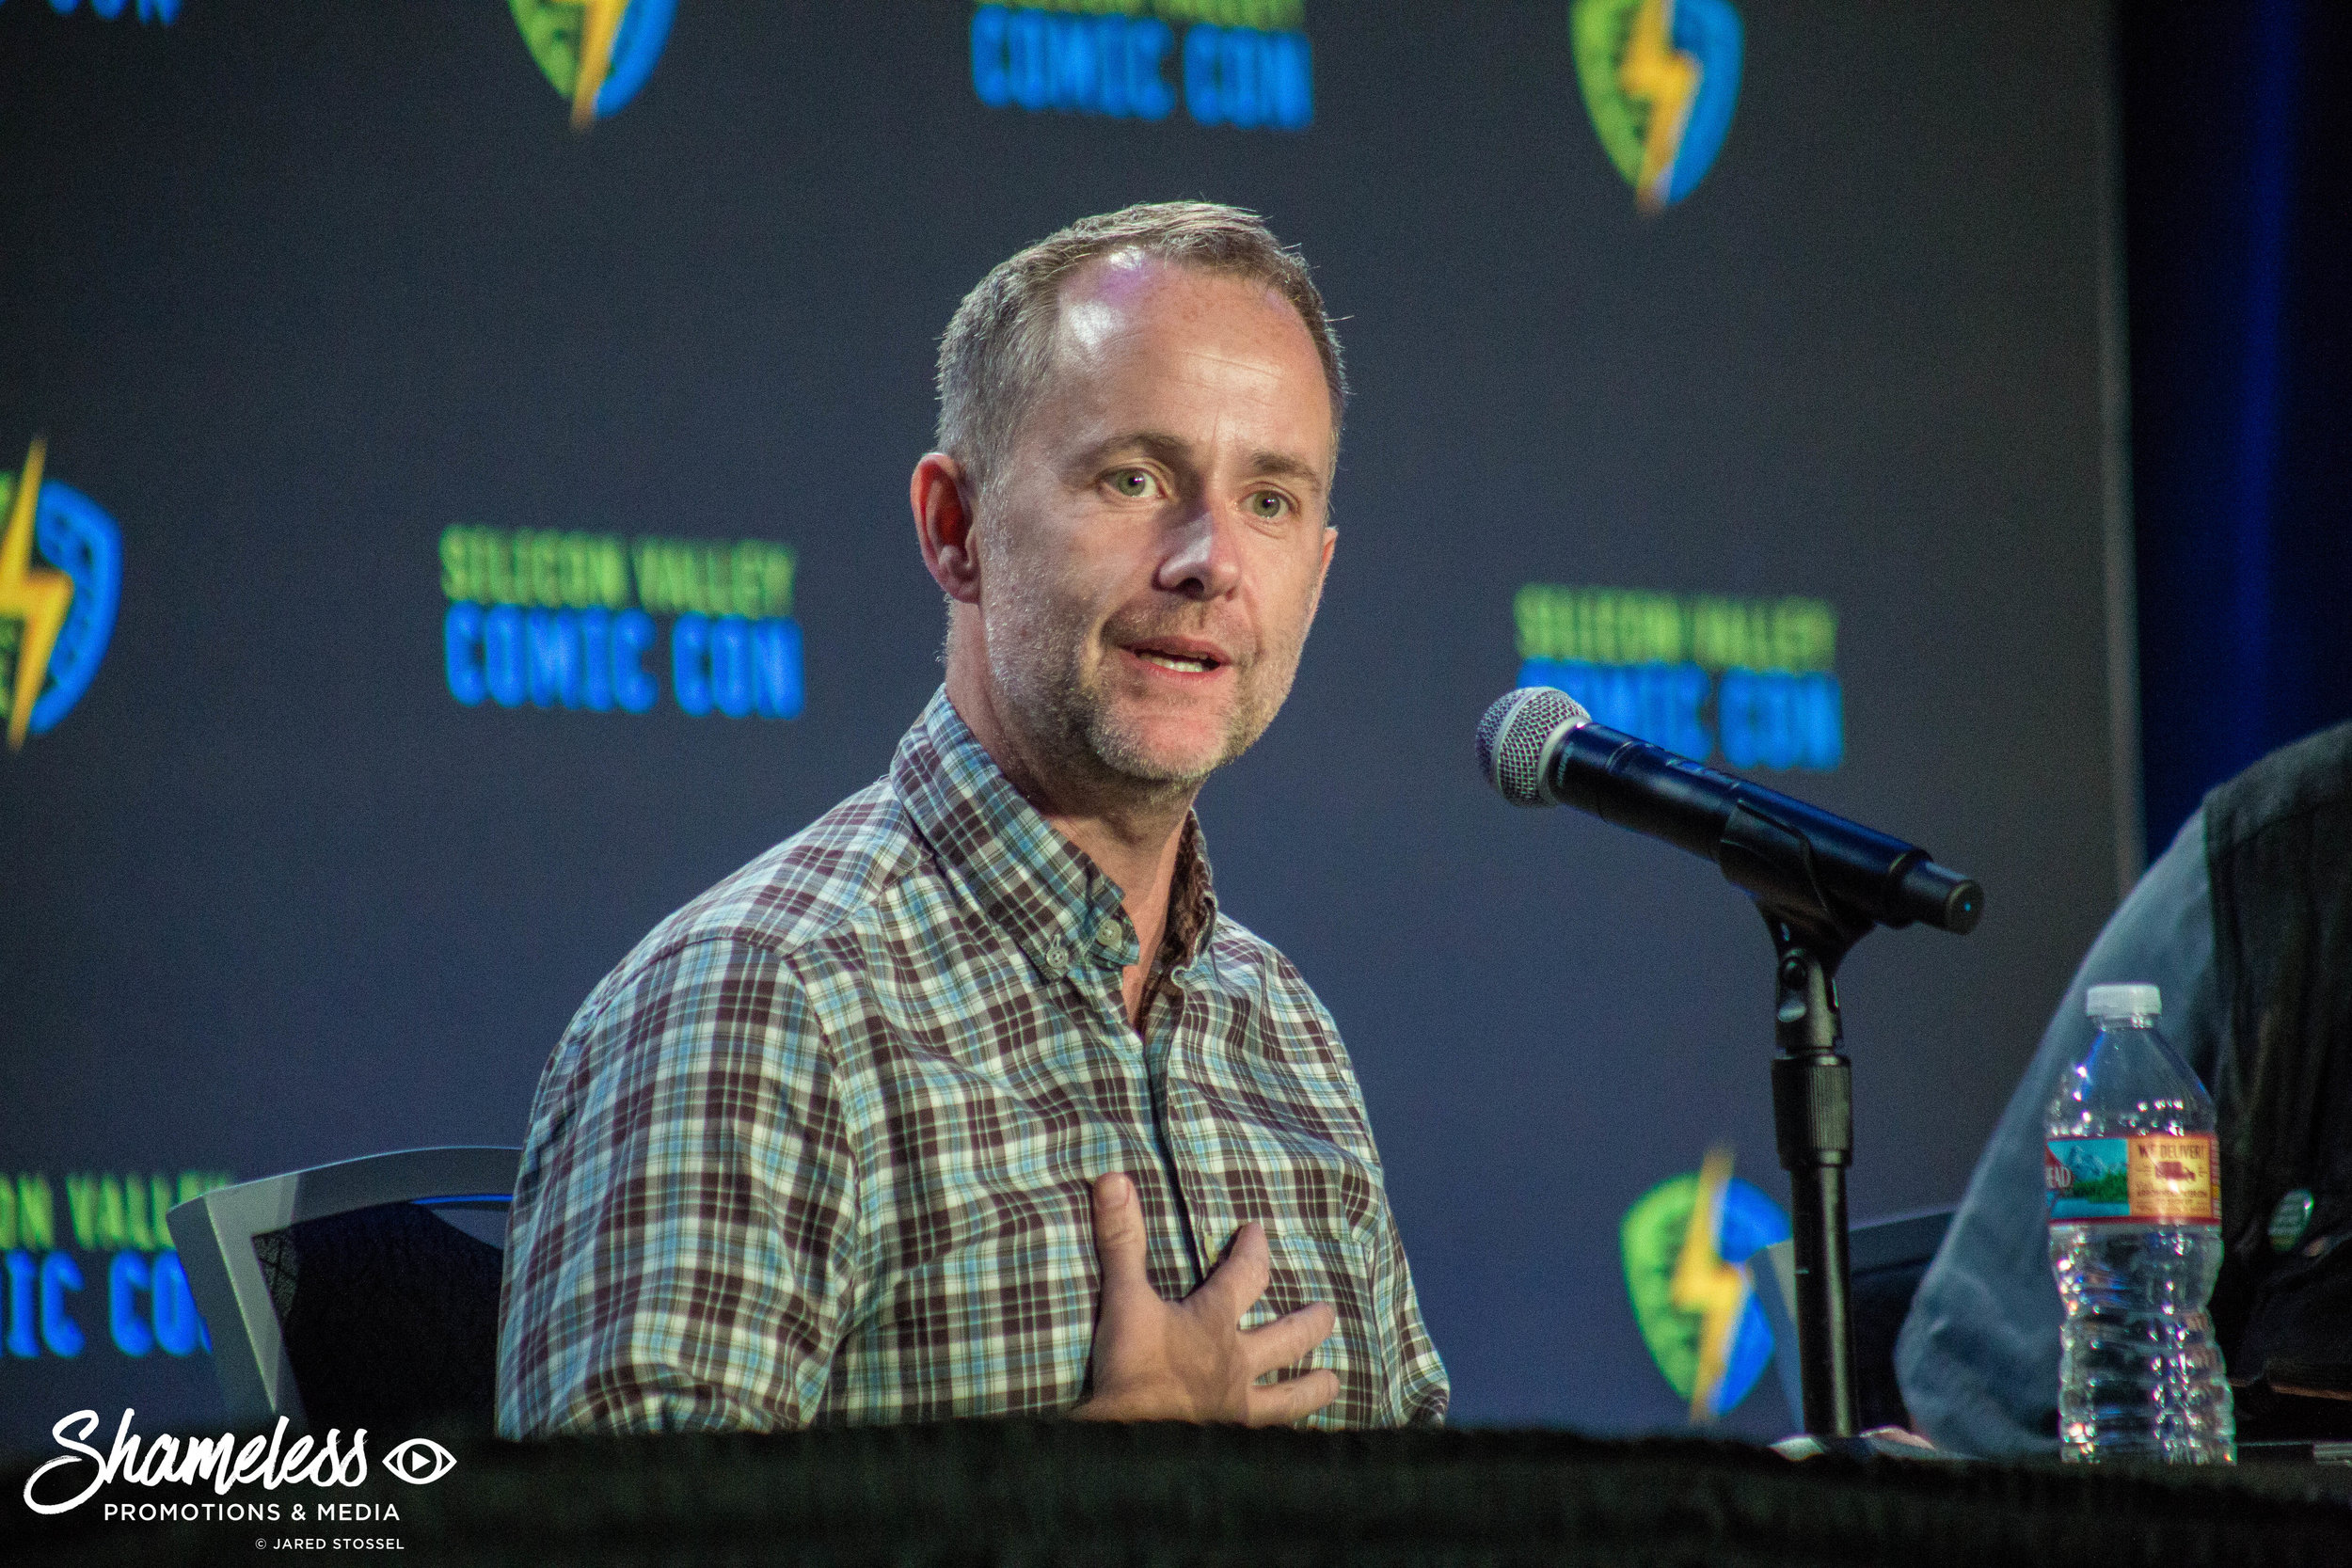 Actor/musician Billy Boyd speaking at Silicon Valley Comic Con. April 23, 2016. Photo Credit: Jared Stossel